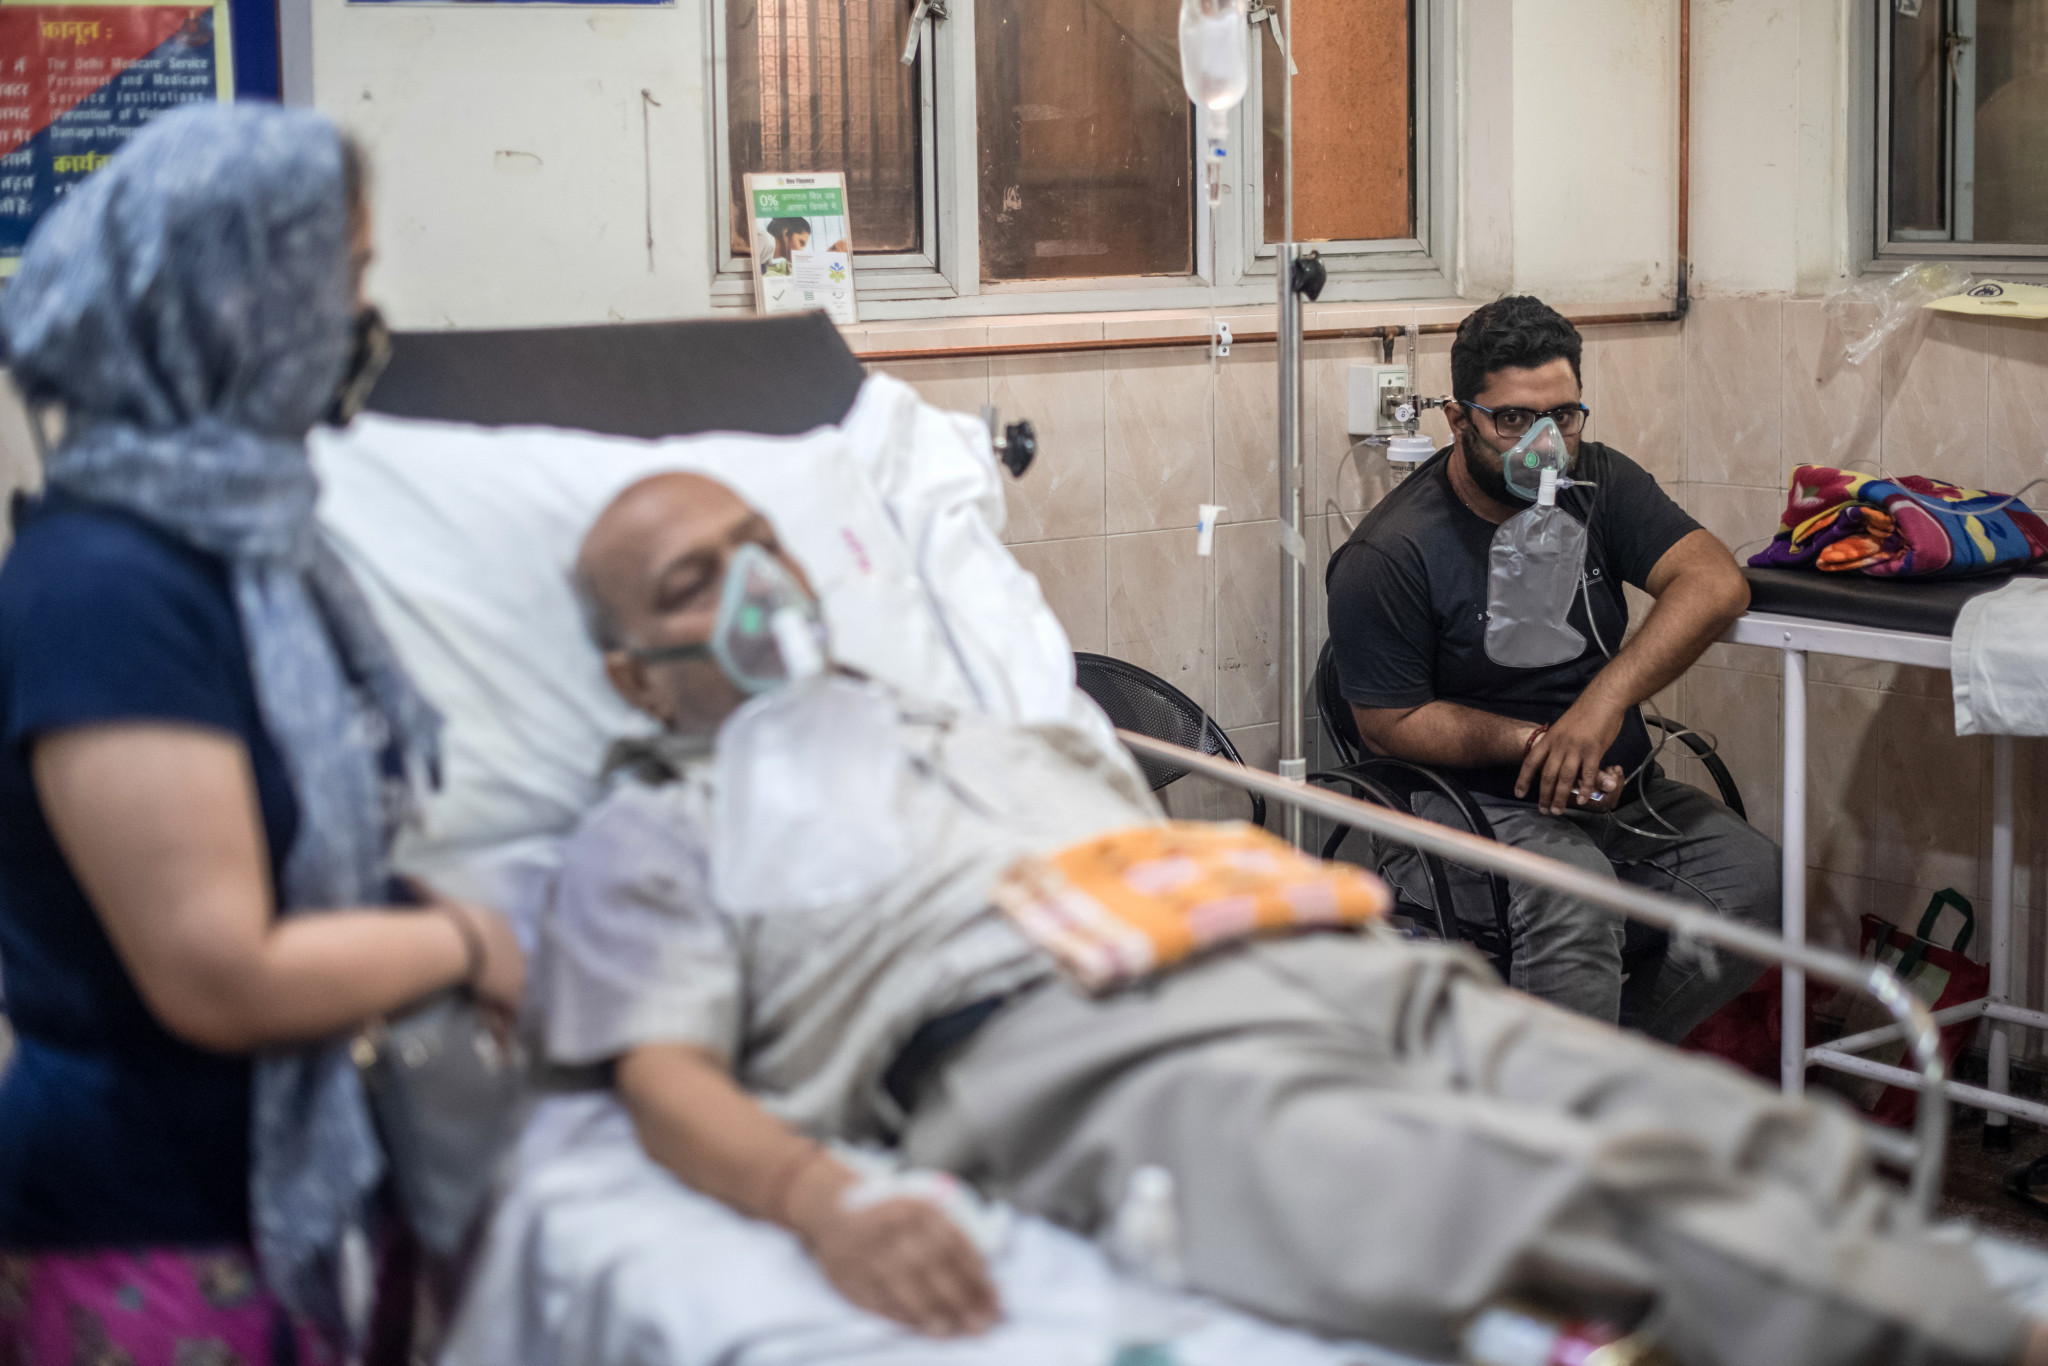 Hospitals in India have been struggling with a shortage of oxygen as the number of COVID-19 patients continues to rise ©Getty Images